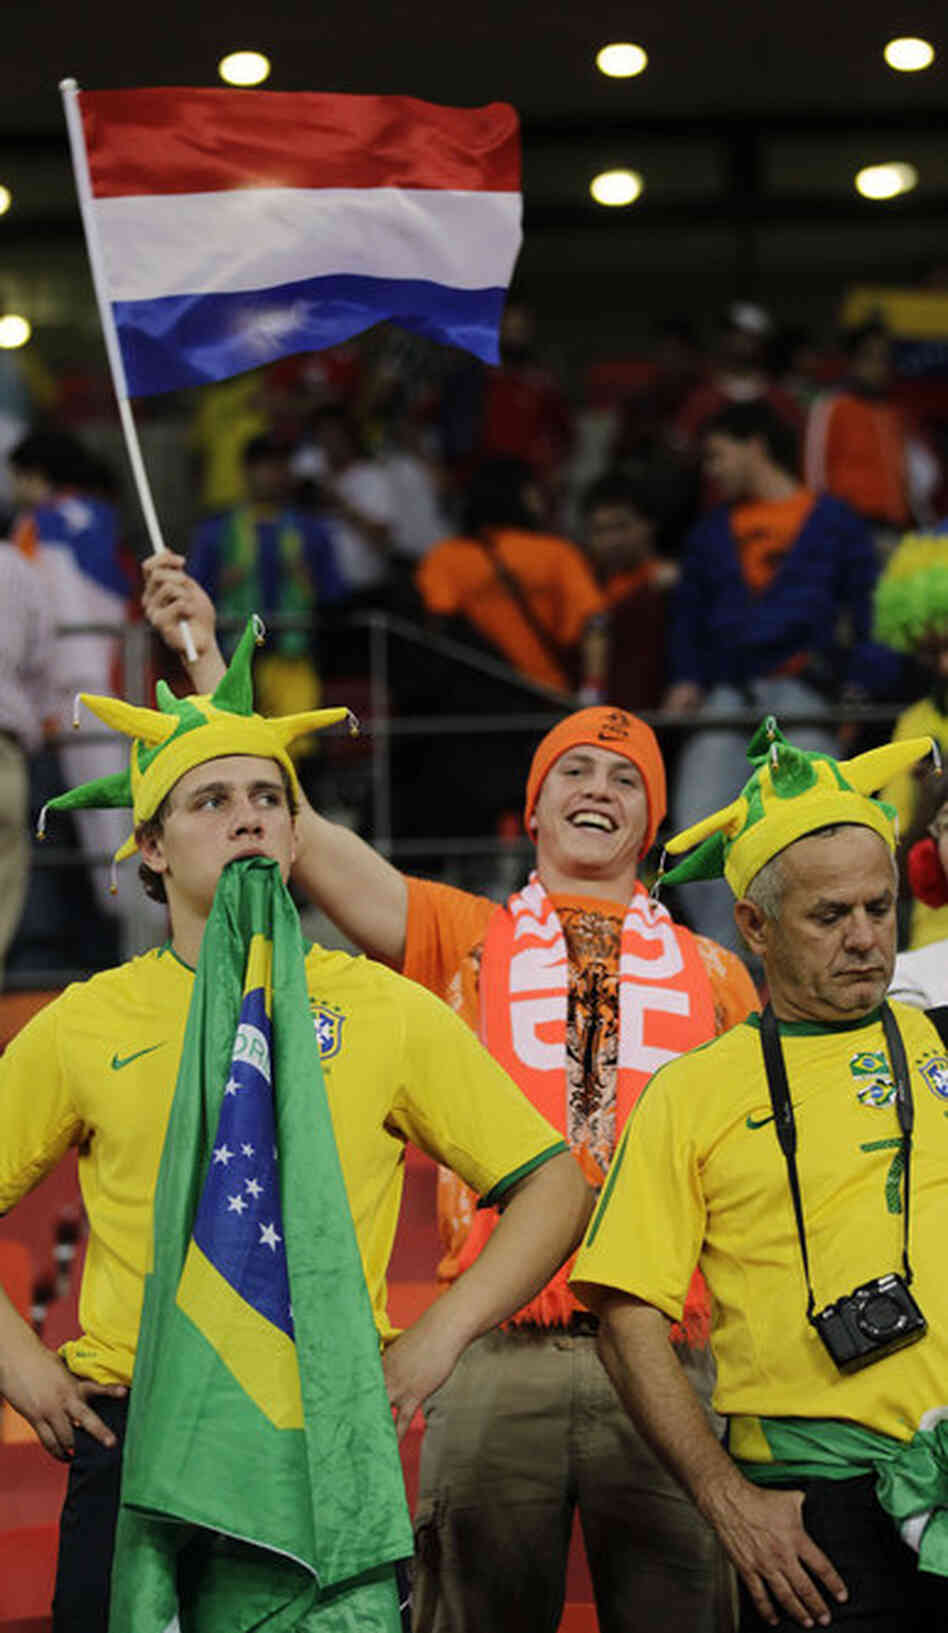 Brazil supporters react as a Netherlands fan celebrates following the quarterfinal match between the Netherlands and Brazil. Netherlands defeated Brazil 2-1.